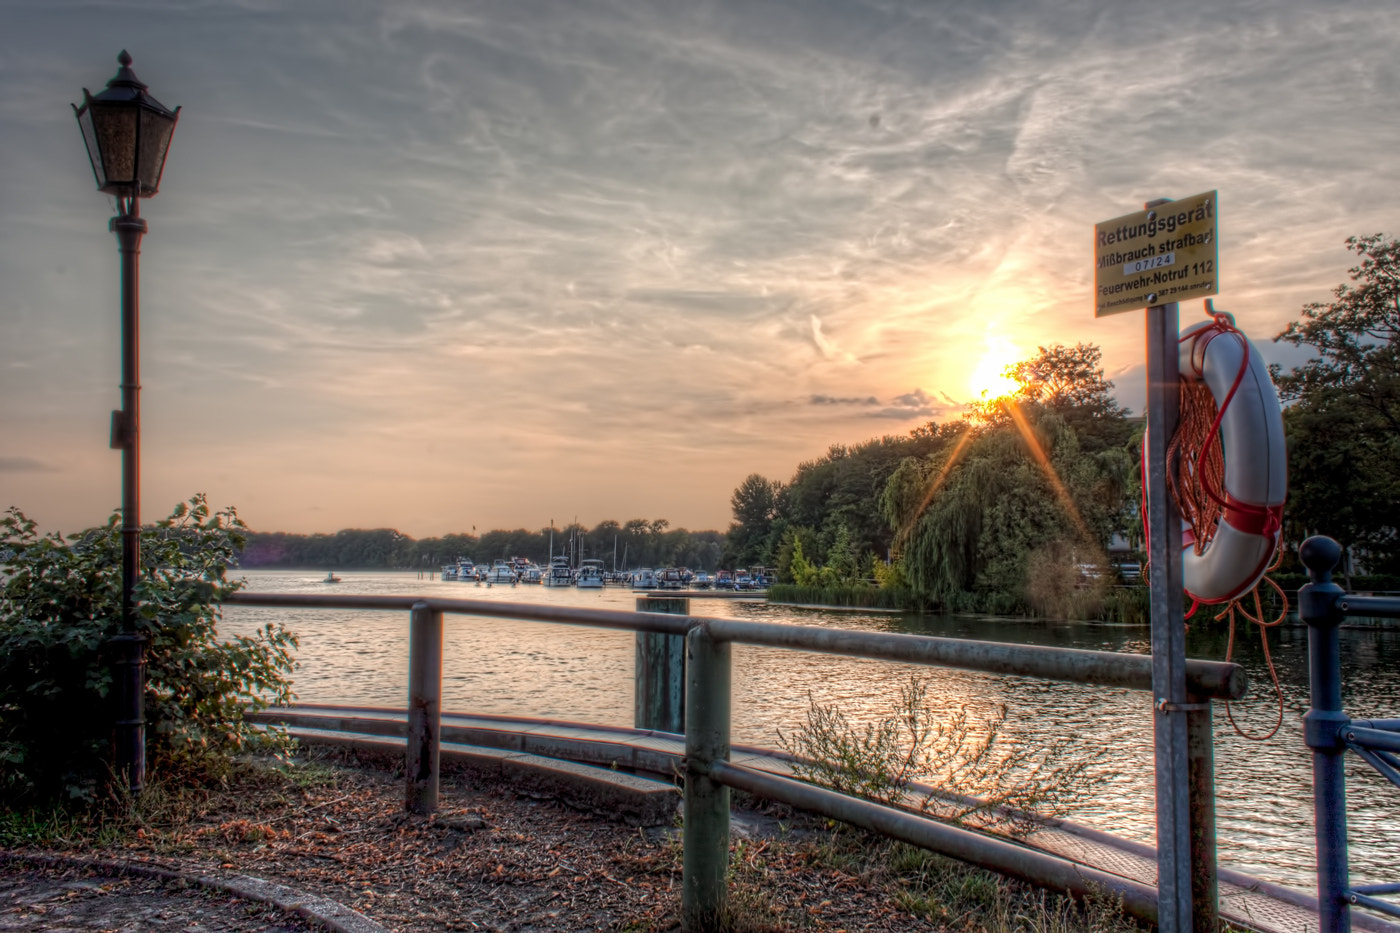 Photograph Evening in Tegel by Nico Trinkhaus on 500px